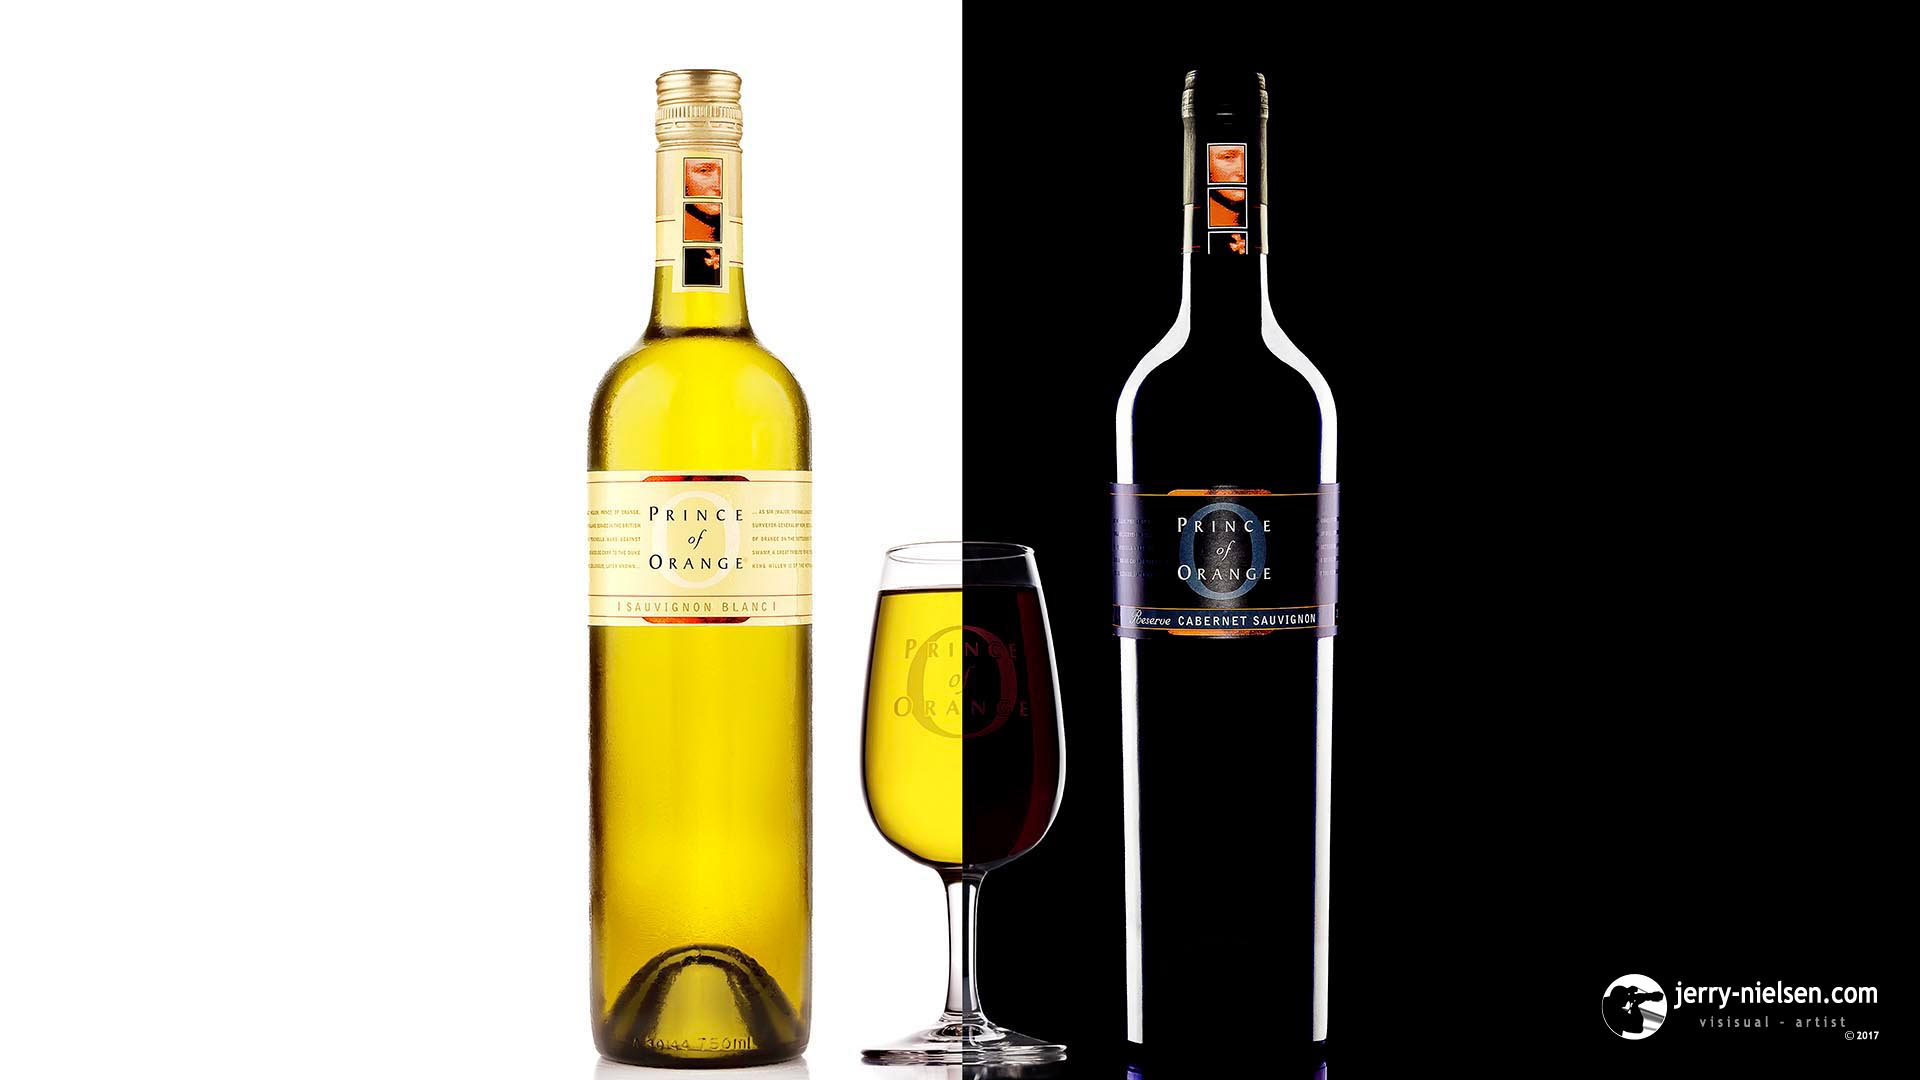 Prince of Orange Wines